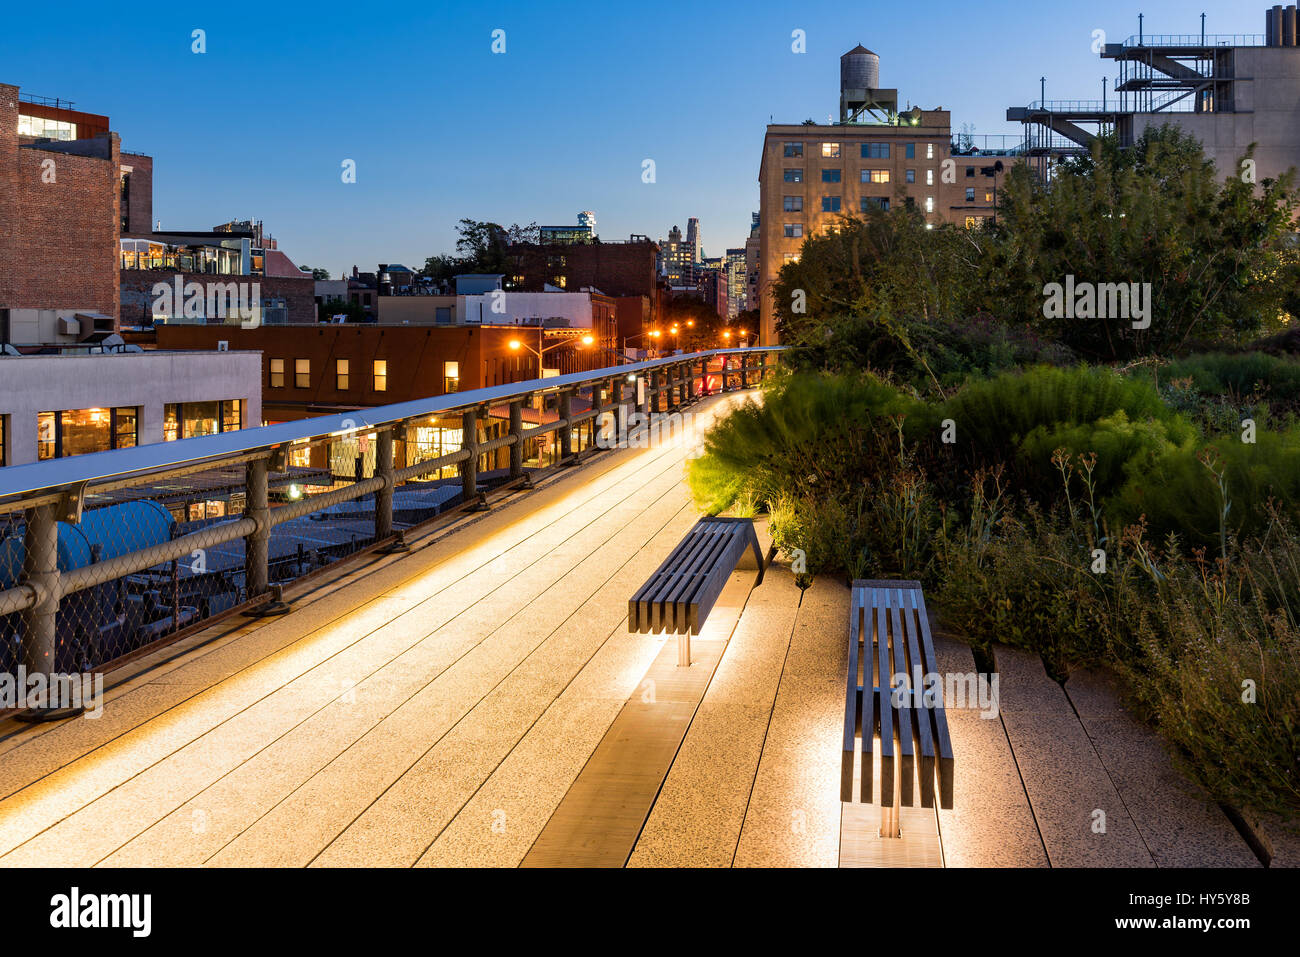 Die Highline bei Dämmerung, West Village, Manhattan, New York City Stockbild